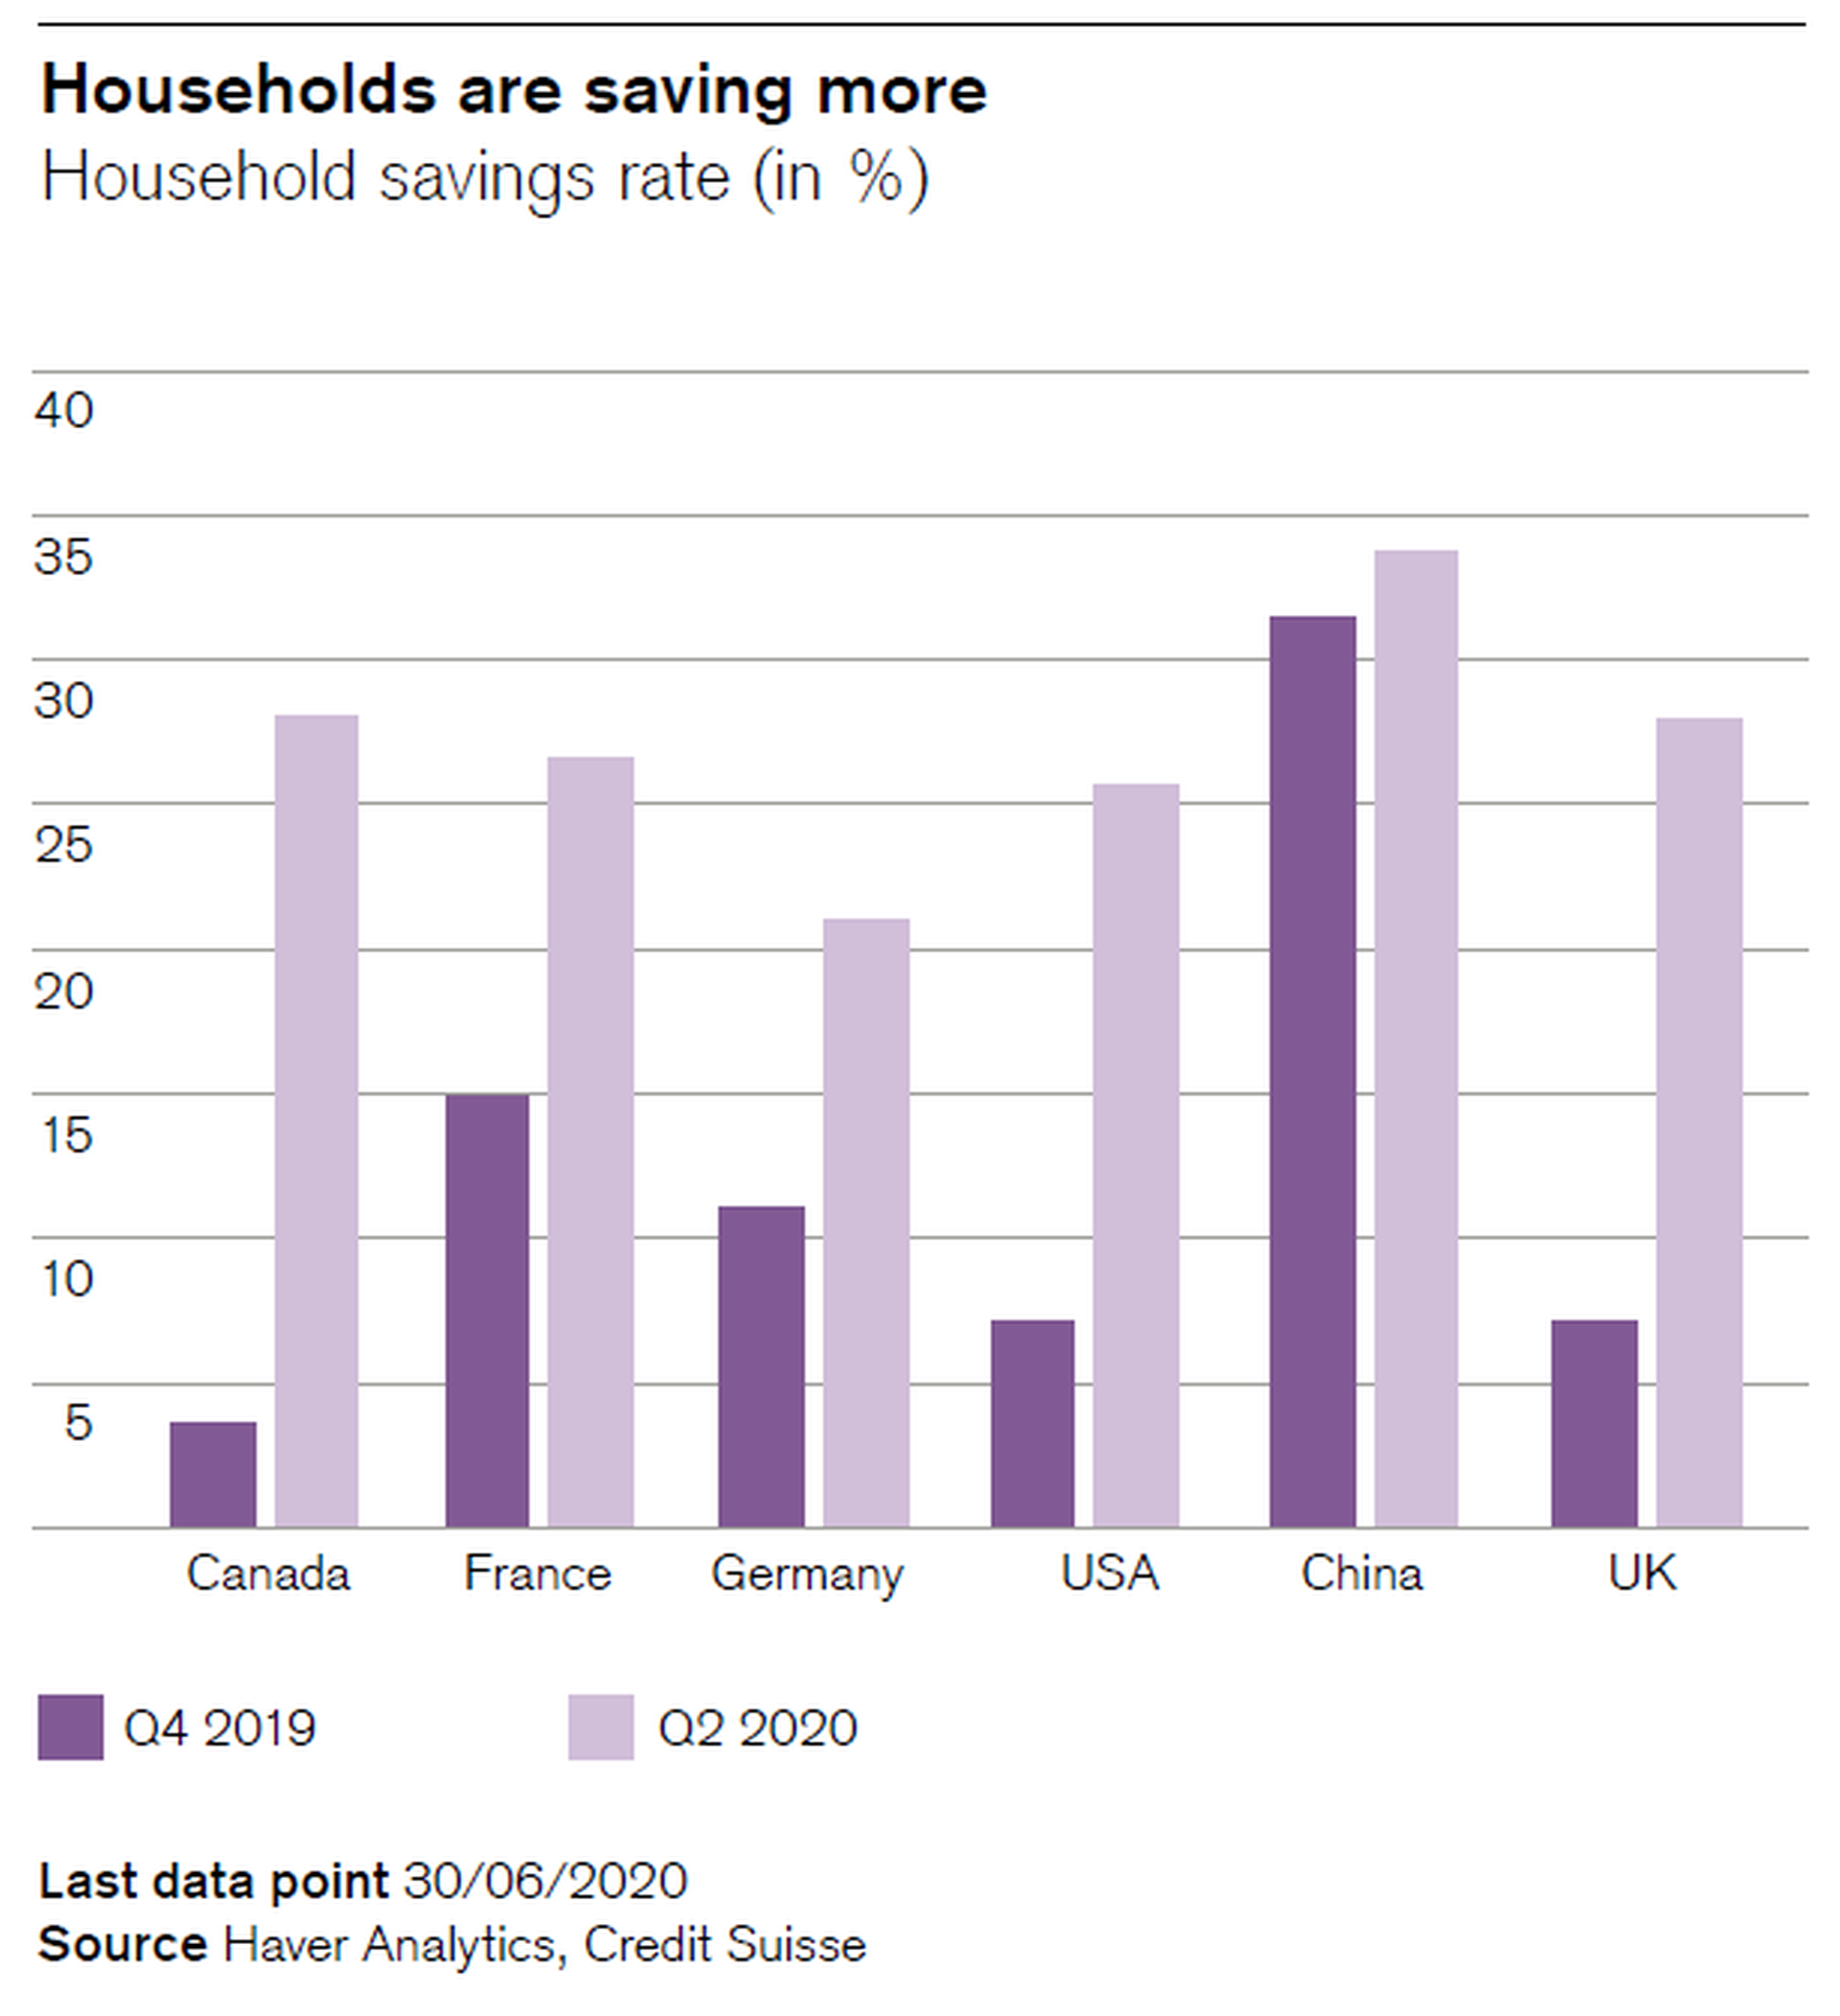 Households are saving more